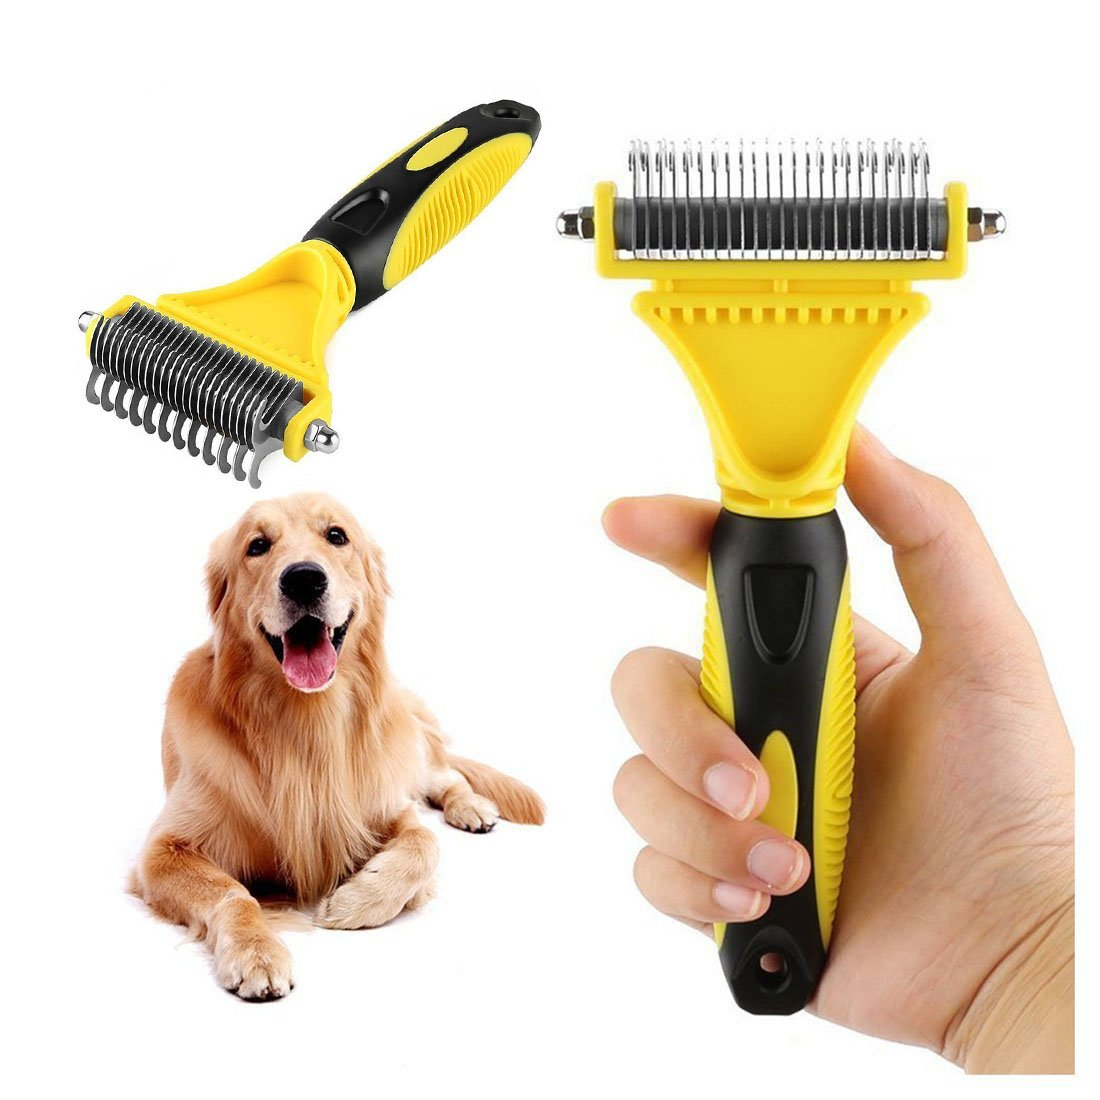 Goldsen Pet Dematting Comb, 2 Sided Undercoat Rake for Cats&Dogs Pet Grooming Tool Removes Undercoat Mats for Small Medium and Large Breeds with Medium and Long Hair for Pet Brush Tool